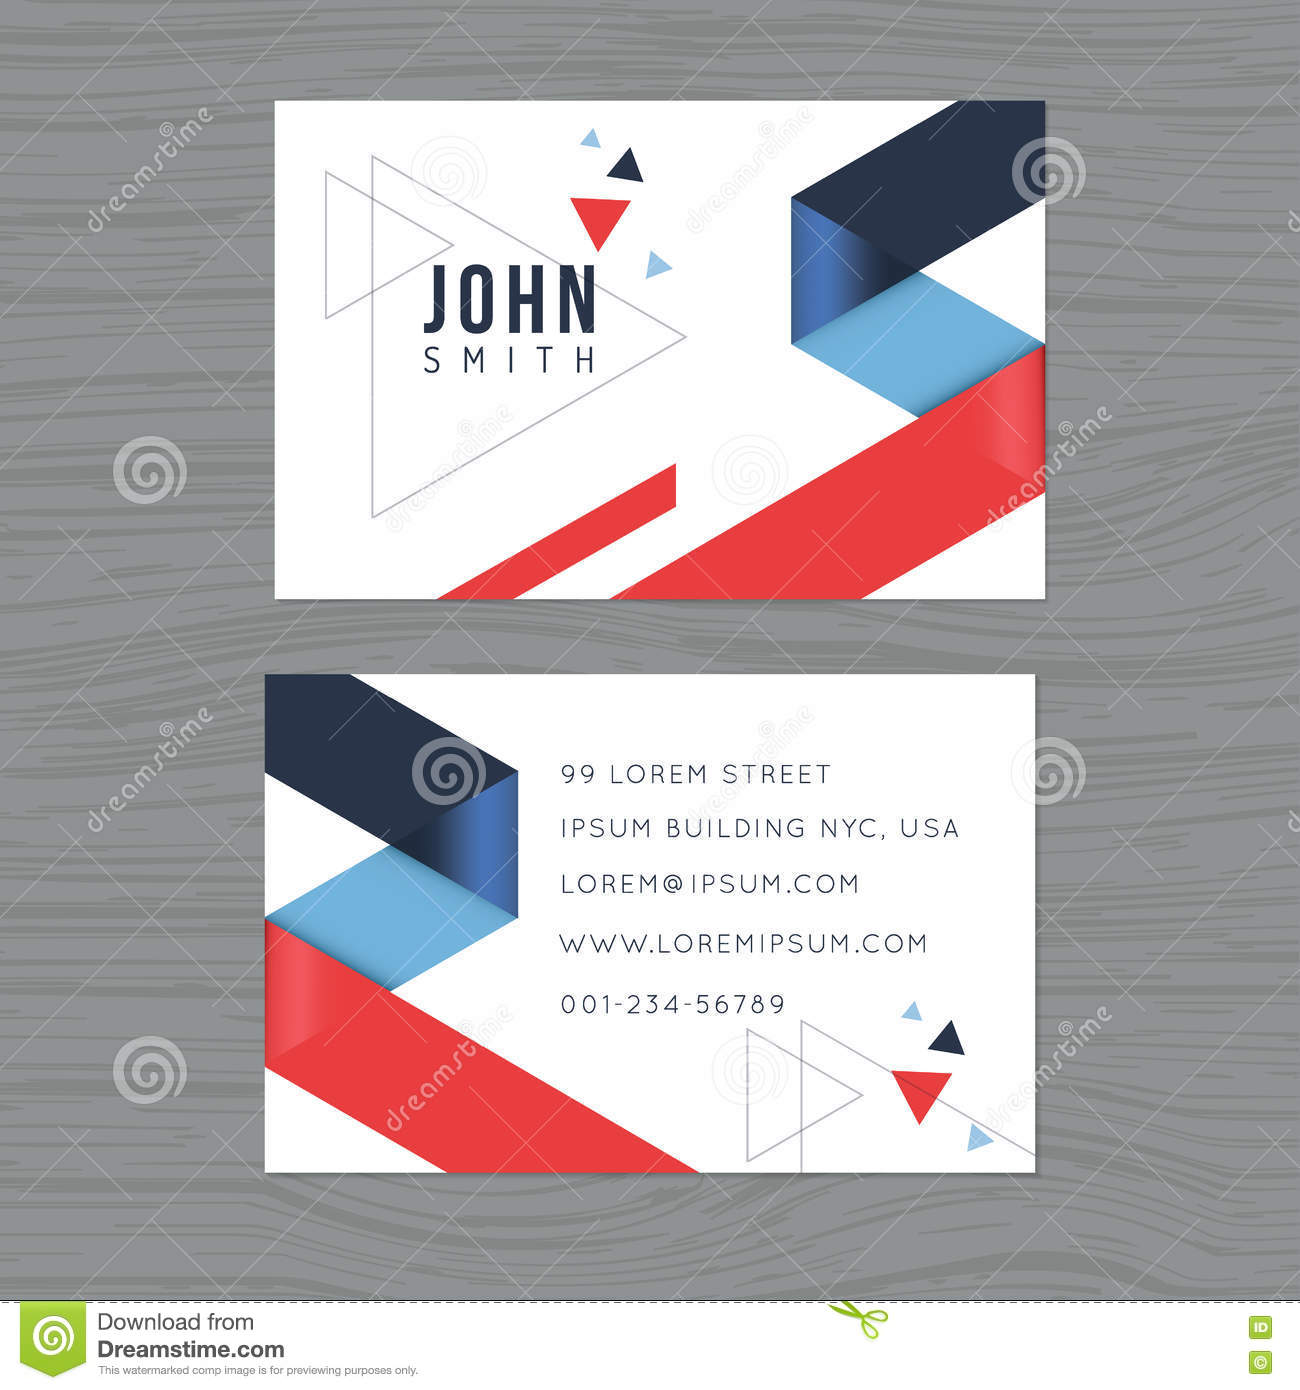 Blue business card template abstract background vector illustration blue business card template abstract background vector illustration cartoondealer 34739652 colourmoves